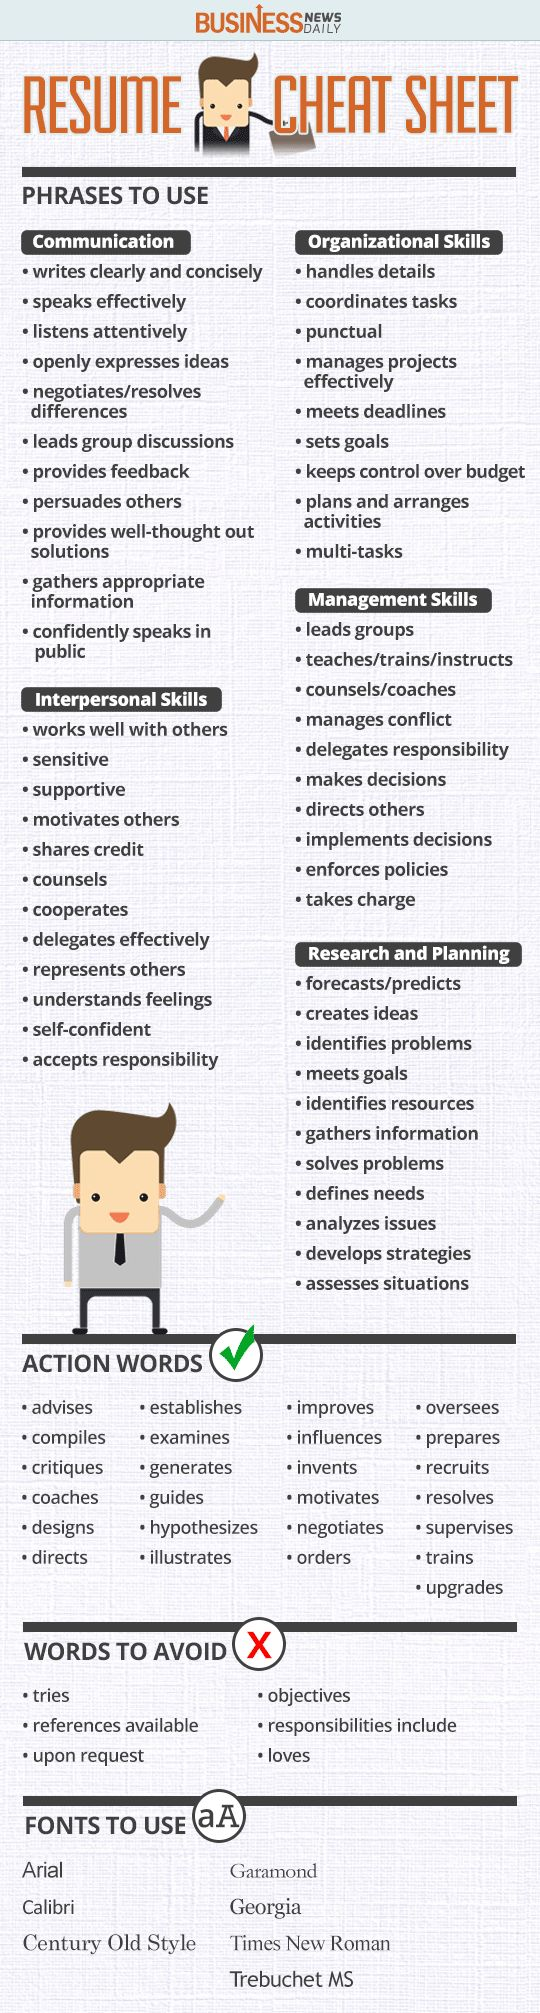 Opposenewapstandardsus  Marvelous  Ideas About Resume On Pinterest  Cv Format Resume Cv And  With Great Resume Cheat Sheet Infographic Andrews Almost Done With A Complete Unit On Employment Which With Archaic Resume Formats Free Also Landscaping Resume In Addition Build Resume Online And Student Resumes As Well As Scrum Master Resume Additionally Write Resume From Pinterestcom With Opposenewapstandardsus  Great  Ideas About Resume On Pinterest  Cv Format Resume Cv And  With Archaic Resume Cheat Sheet Infographic Andrews Almost Done With A Complete Unit On Employment Which And Marvelous Resume Formats Free Also Landscaping Resume In Addition Build Resume Online From Pinterestcom